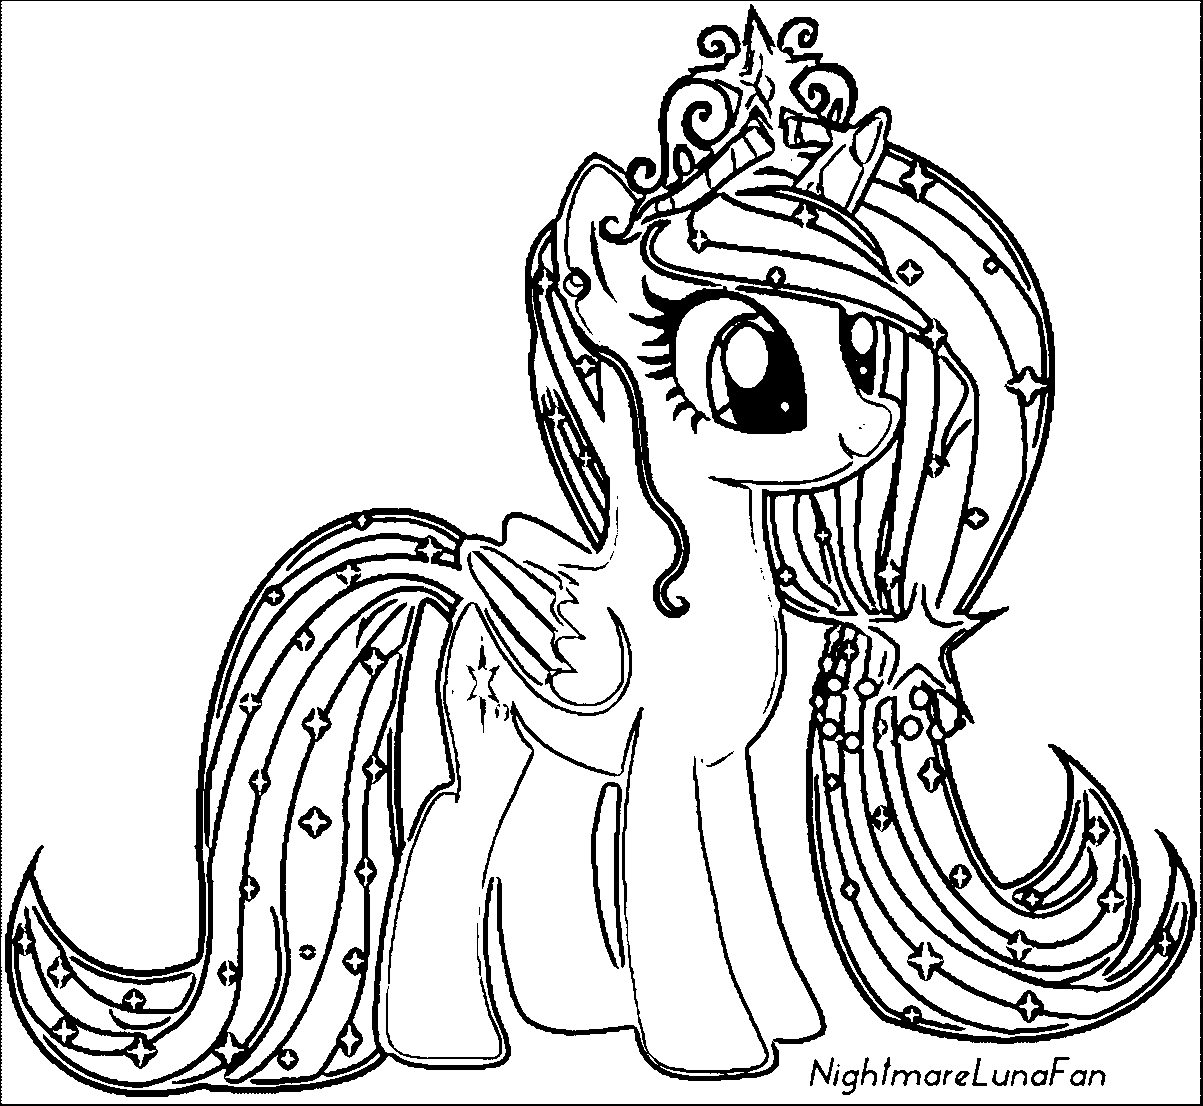 my little pony friendship is magic coloring pages luna learn how to draw princess luna from my little pony my is magic pony coloring little friendship pages luna